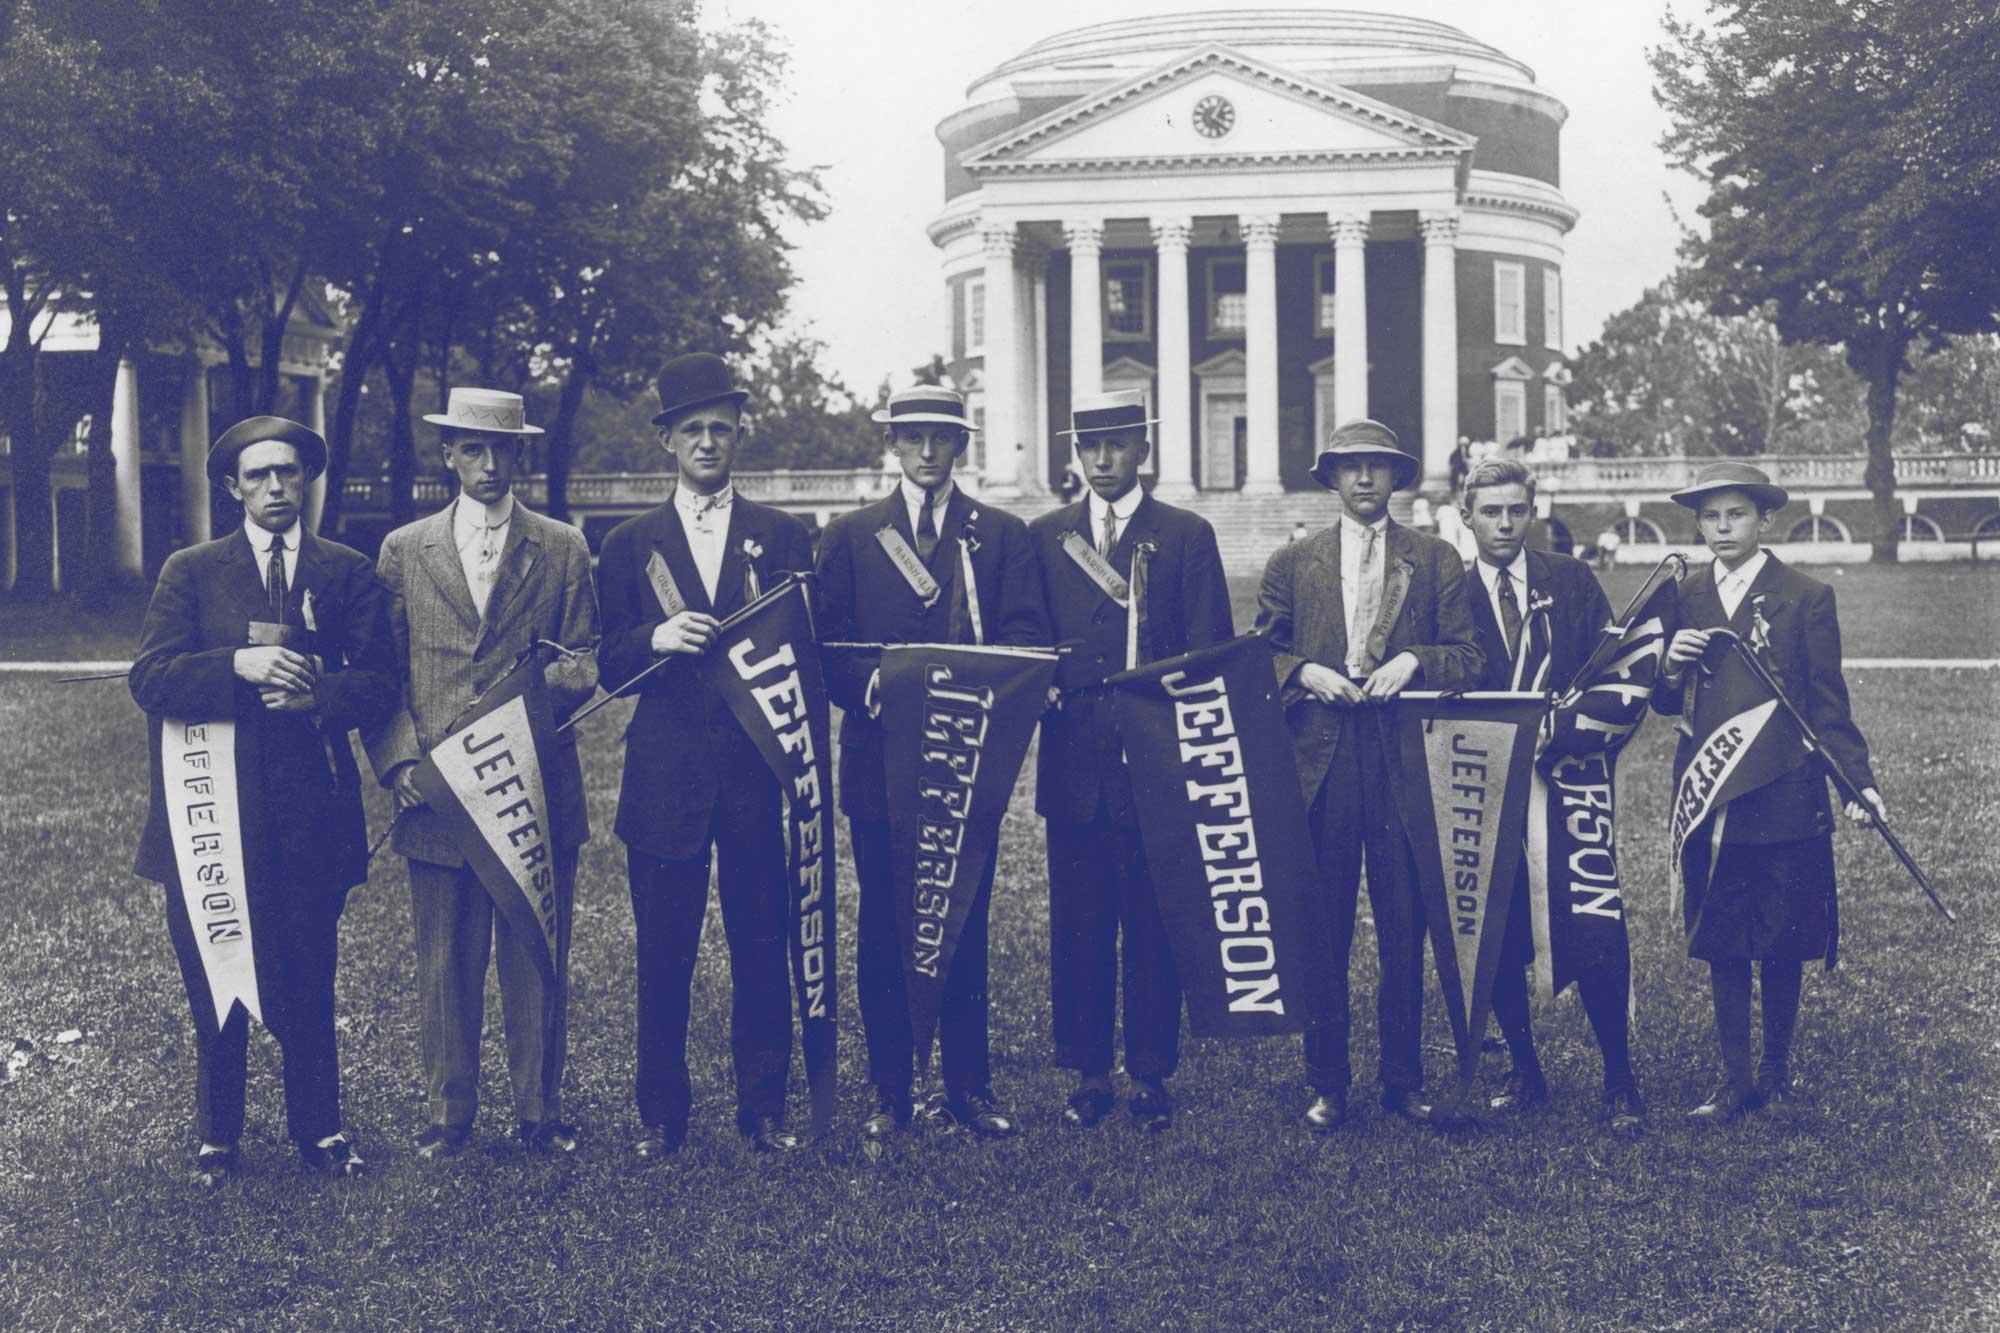 Jefferson Society members on the Lawn, circa 1910.